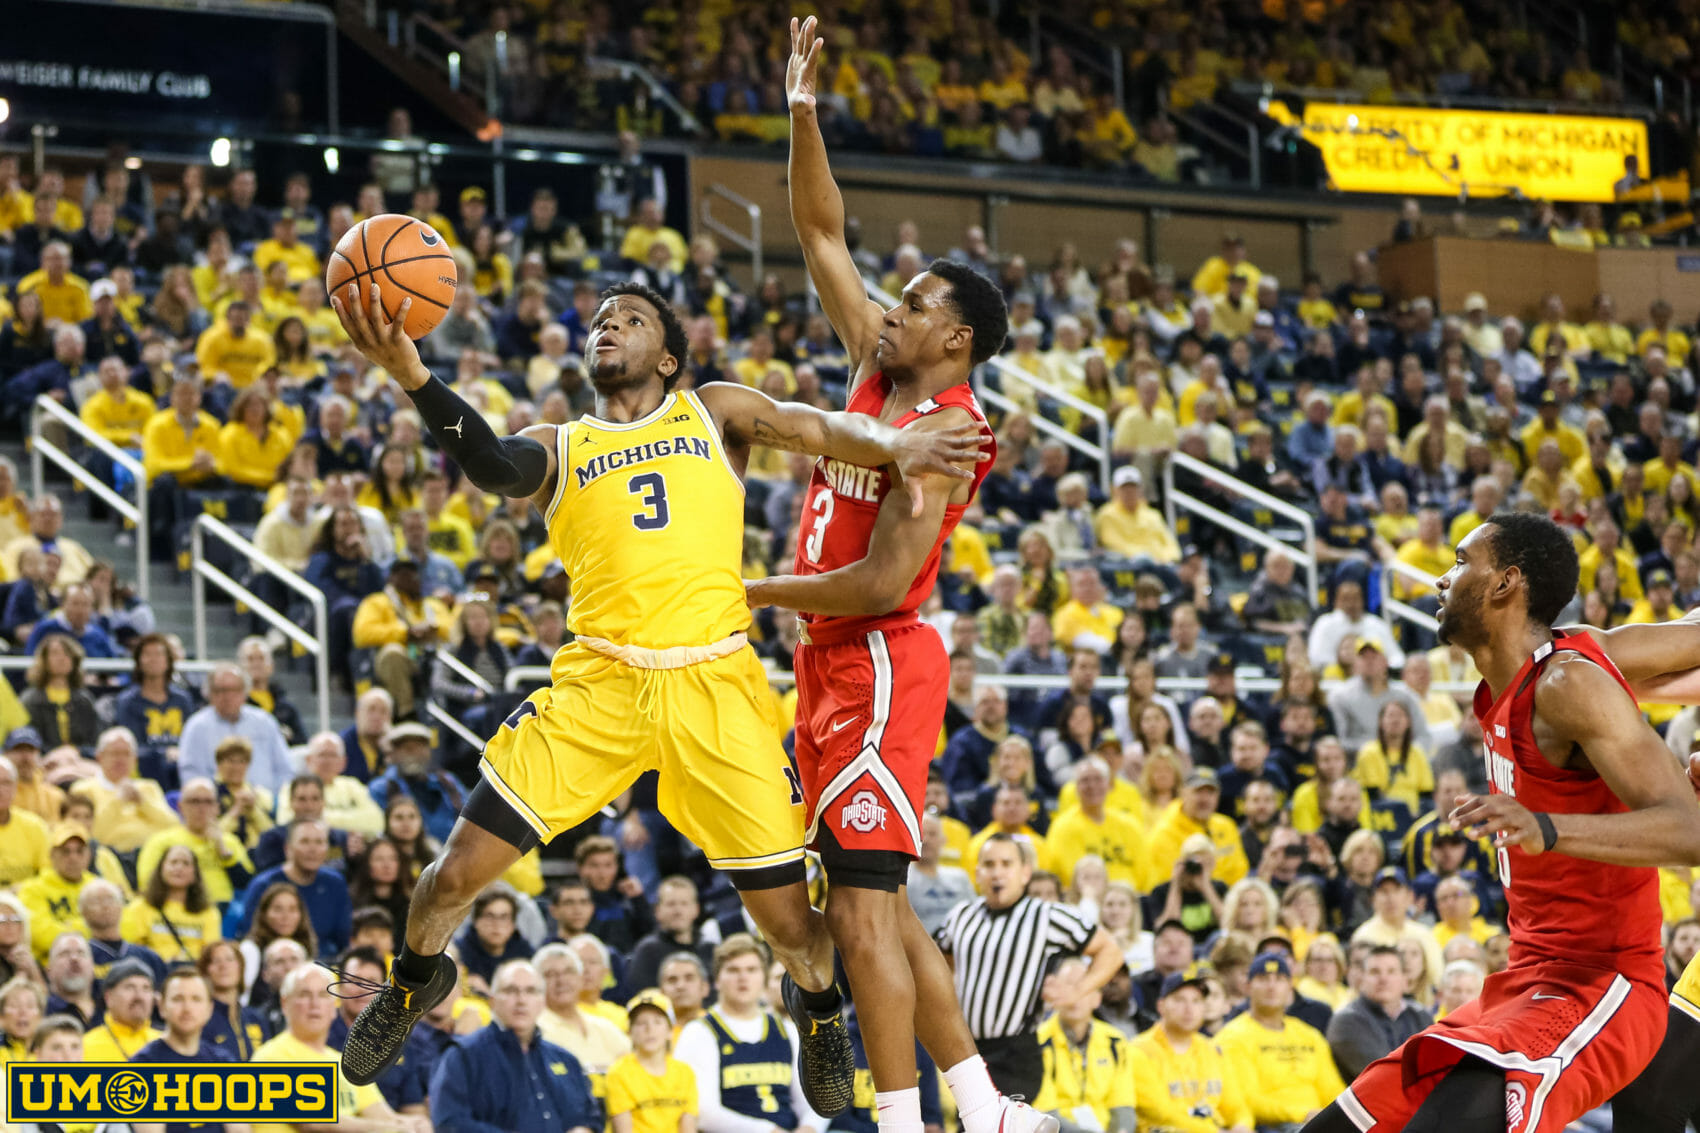 Michigan 74, Ohio State 62-16